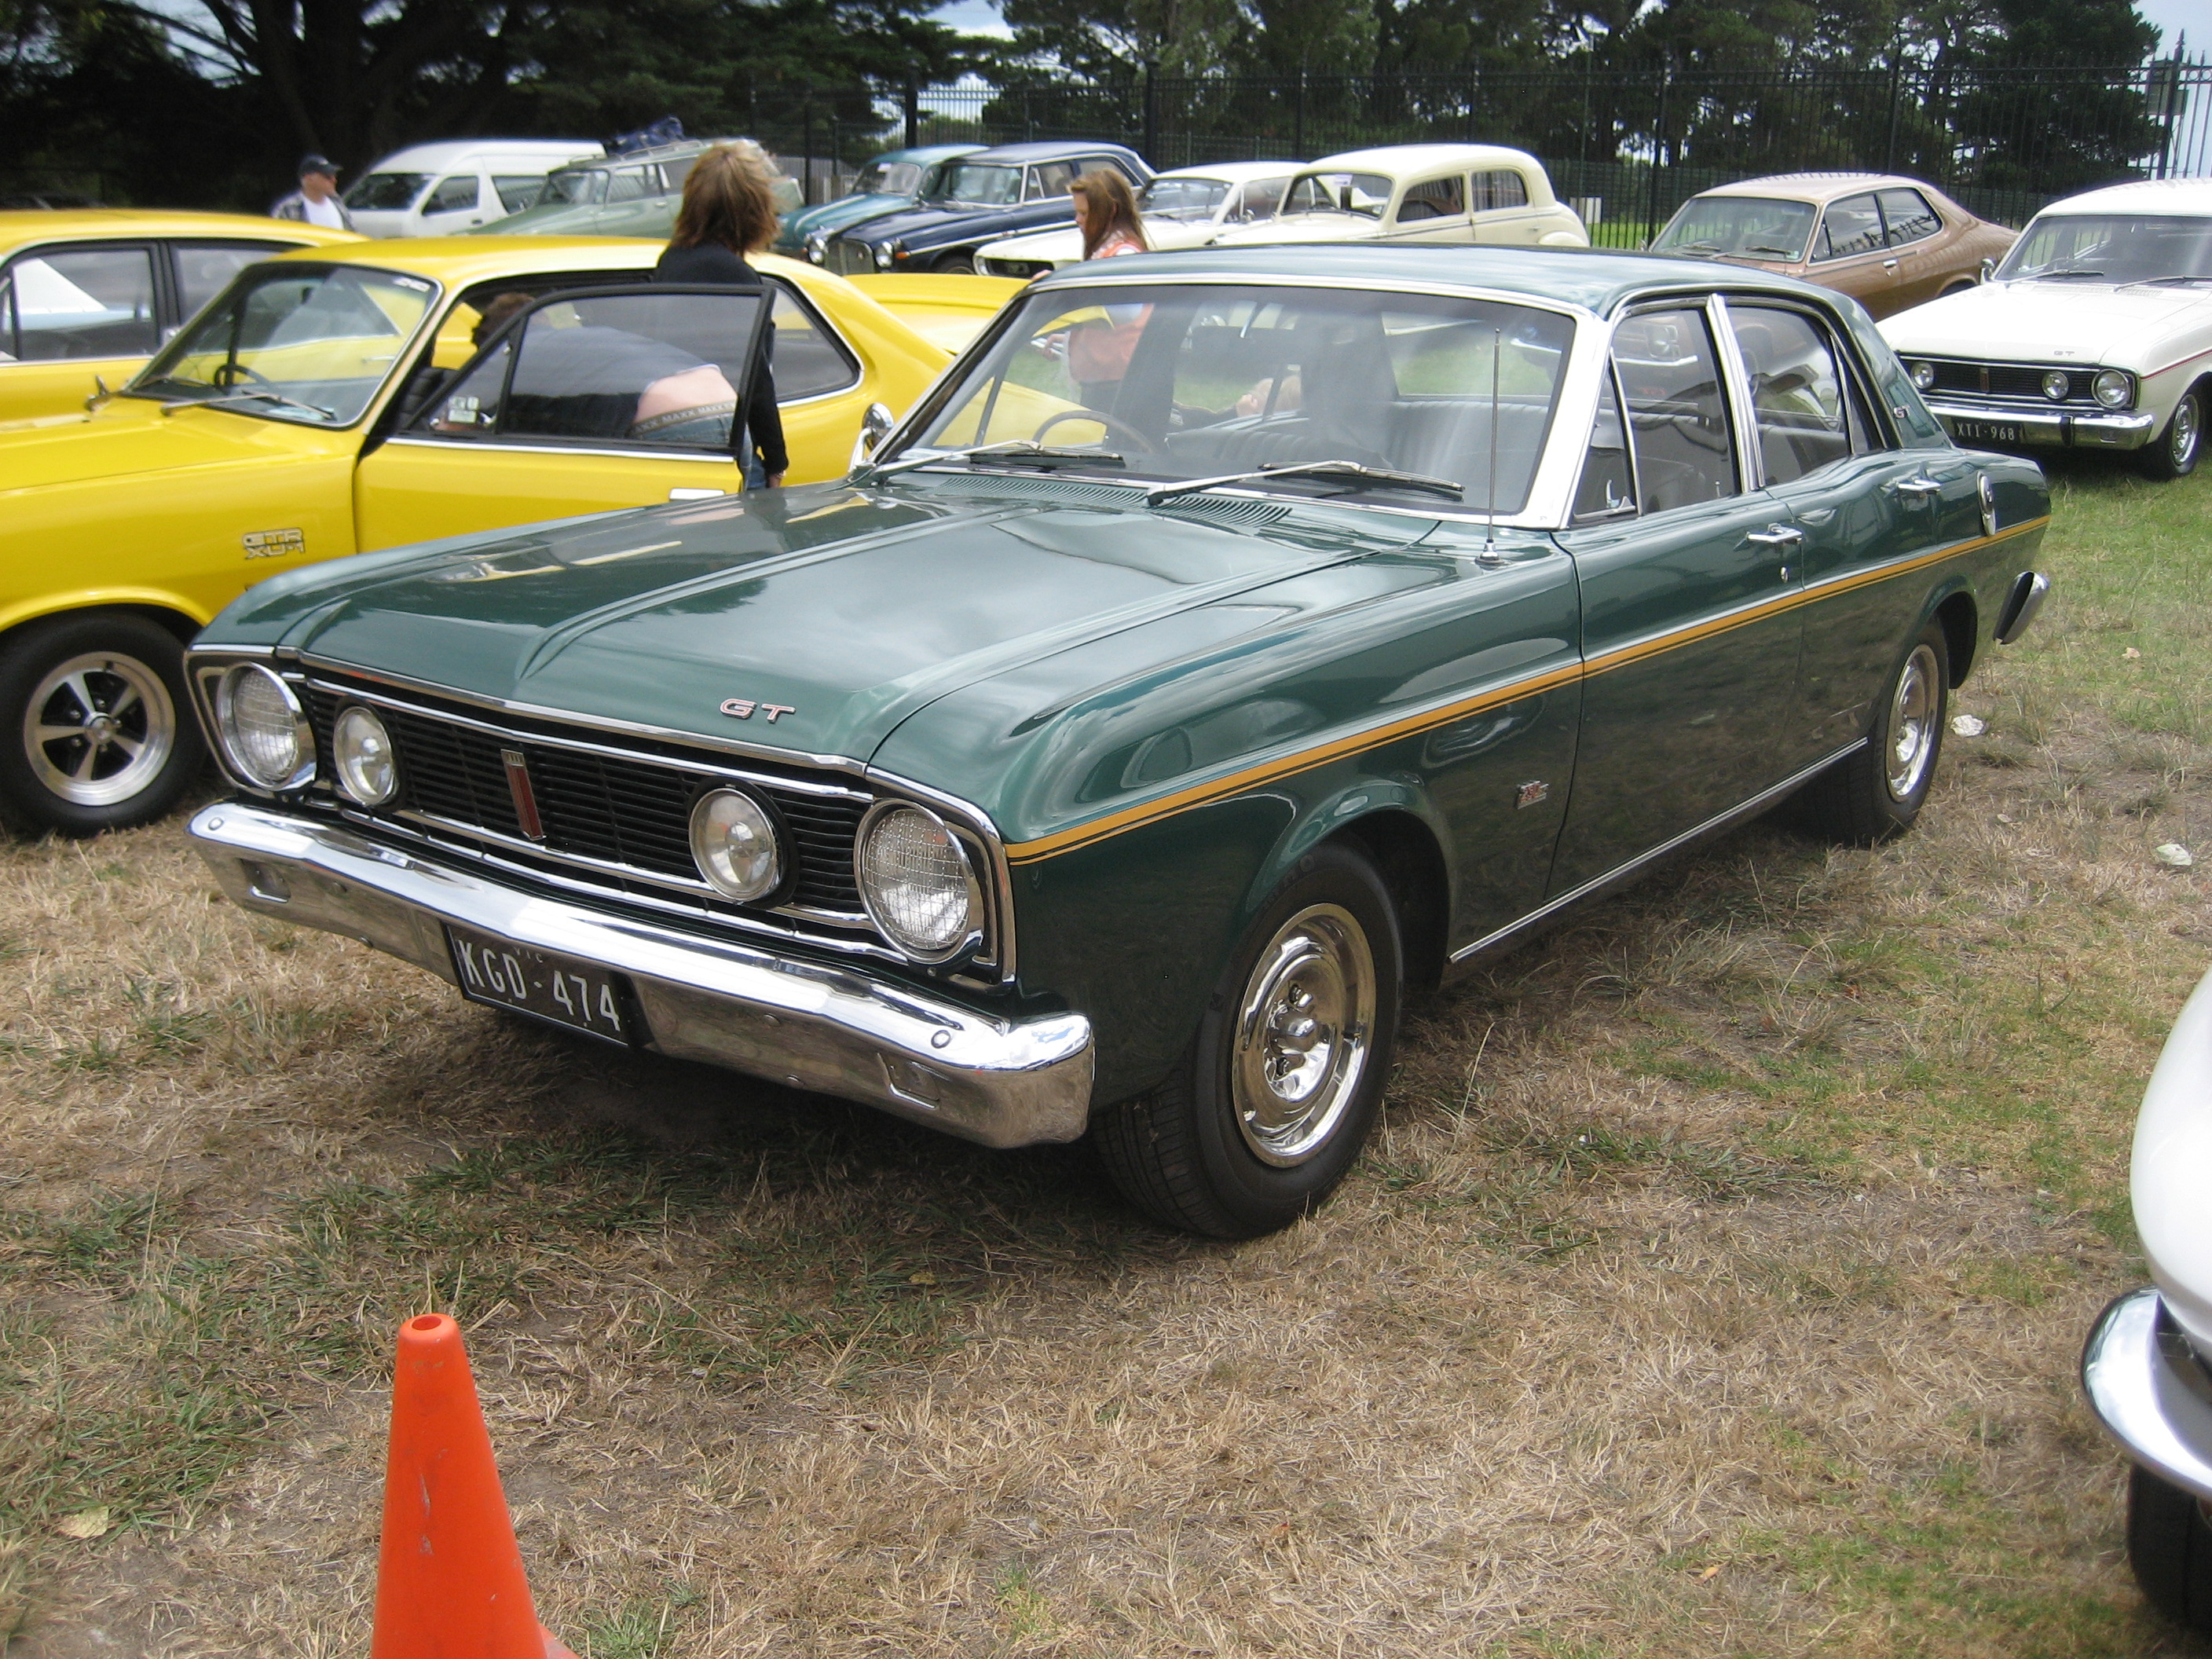 Watch furthermore Retrotech Ford Xy Falcon Radroo With Ef Falcon Running Gear also Rhys Christou 1967 Ford Xr Falcon Windsor Powered as well 2r5ck Release Tension Drive Belt Falcon besides 4. on ford xt falcon